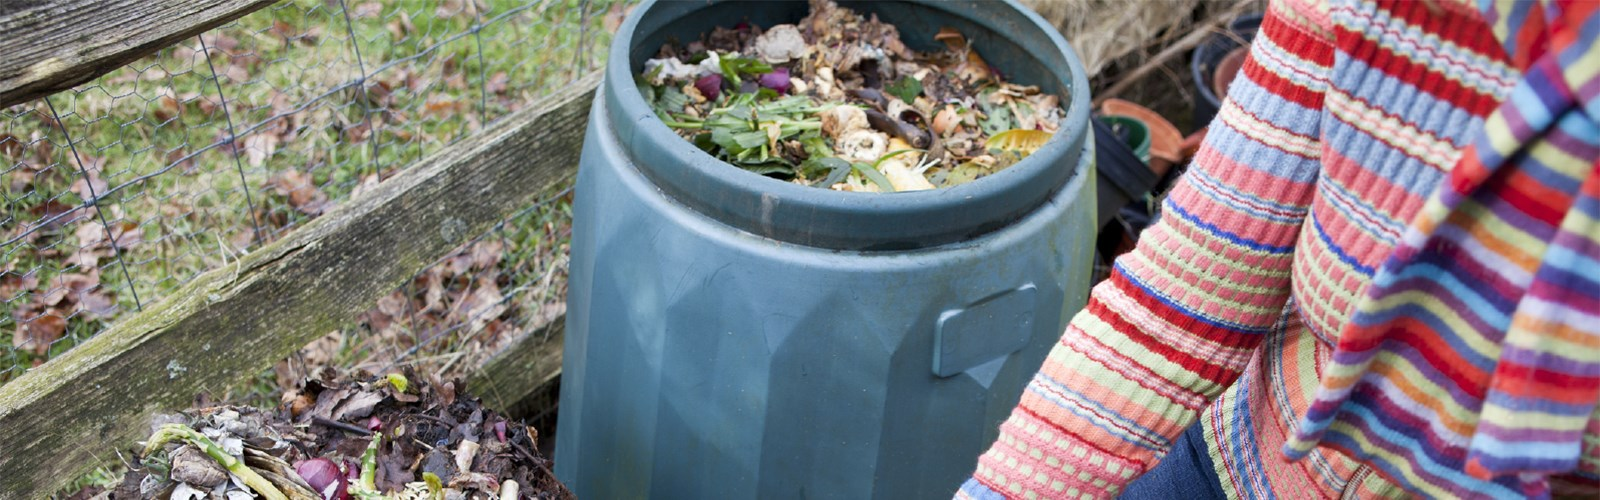 Backyard Composting - Region of Waterloo